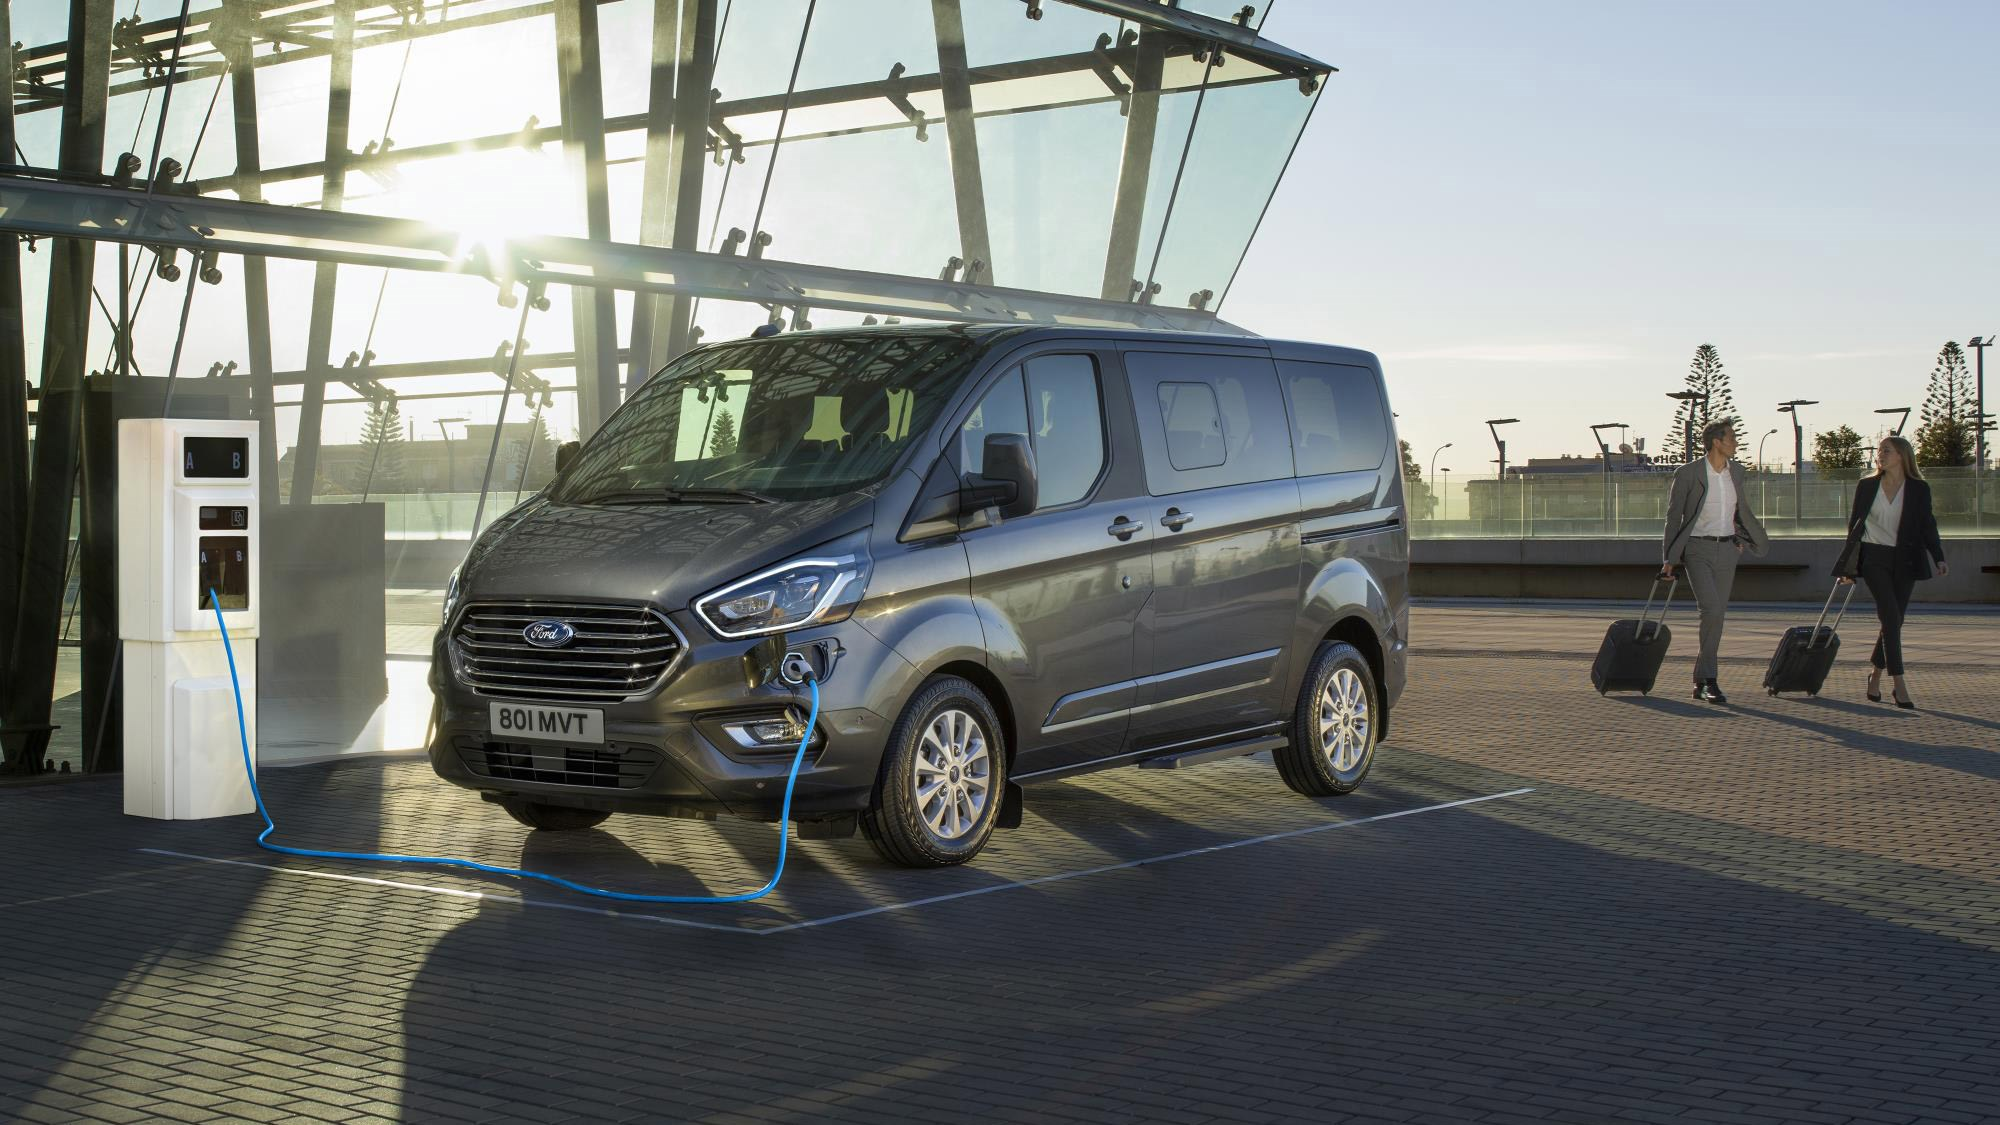 Ford S Electric Push From Famine To Feast In A Single Day Car Magazine